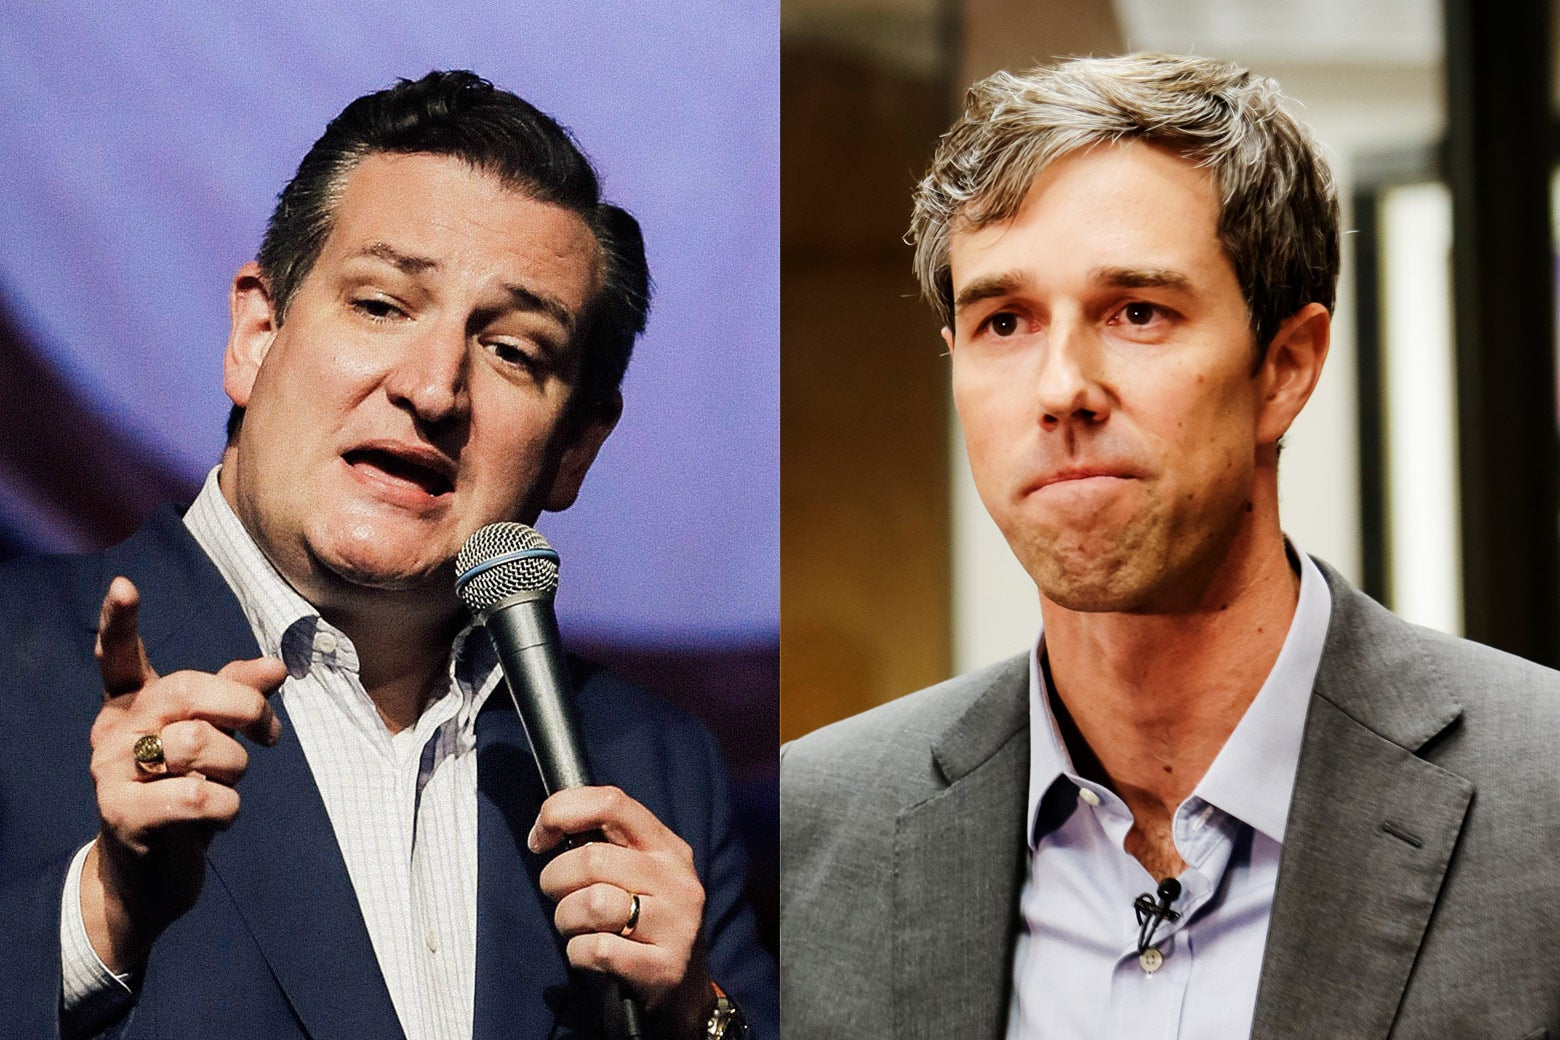 Side by side: Texas Sen. Ted Cruz and U.S. Representative Beto O'Rourke of Texas.